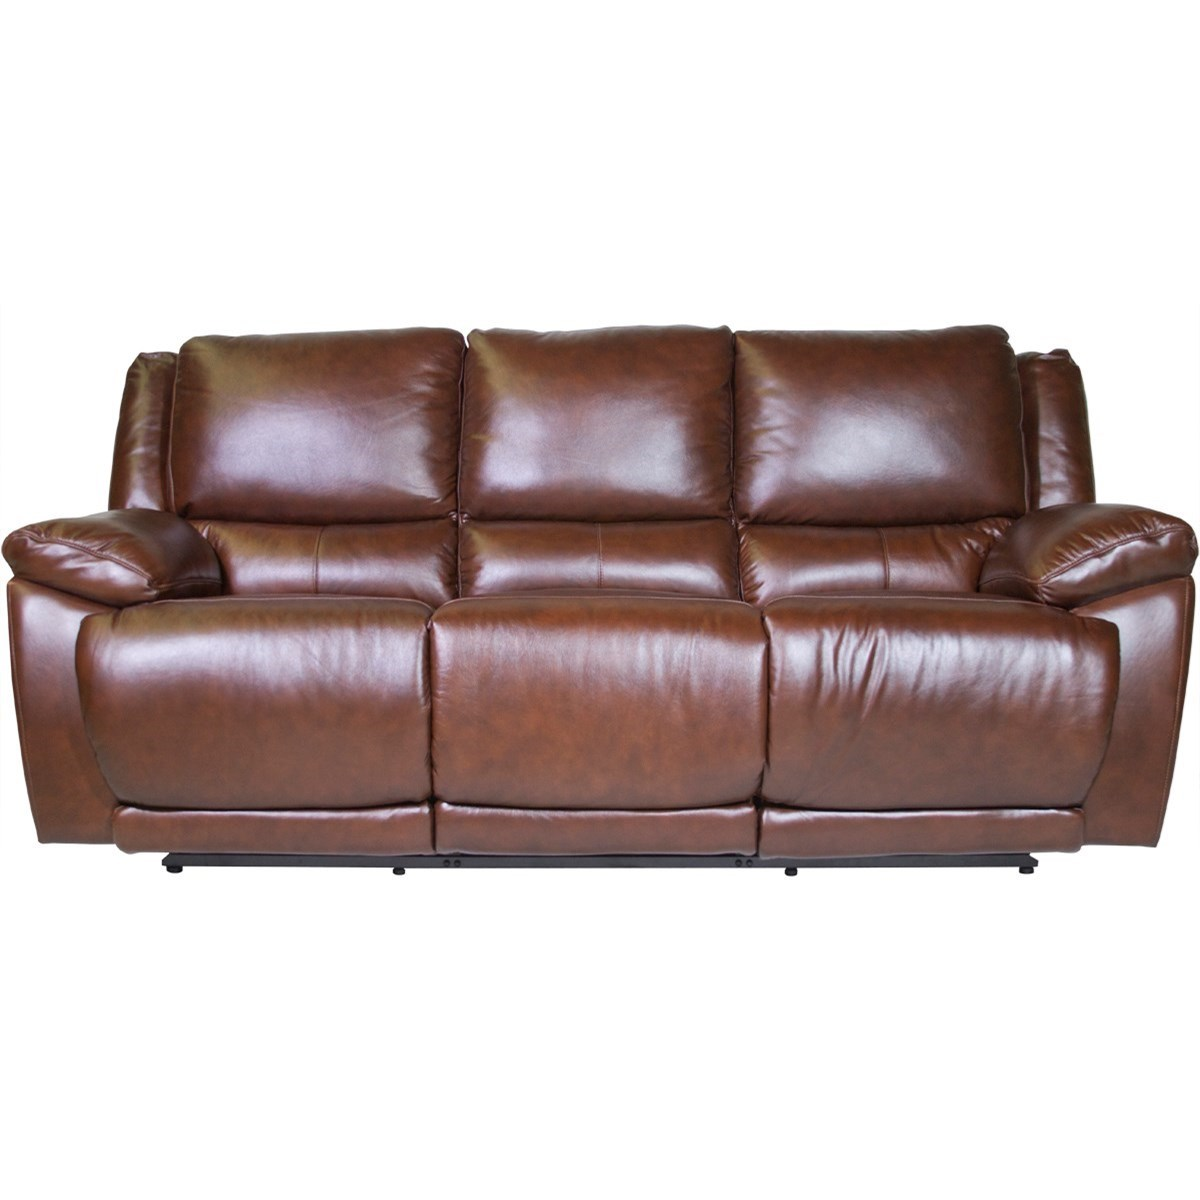 Futura Leather Curtis Power Reclining Sofa - Item Number: E1358-317-1148H